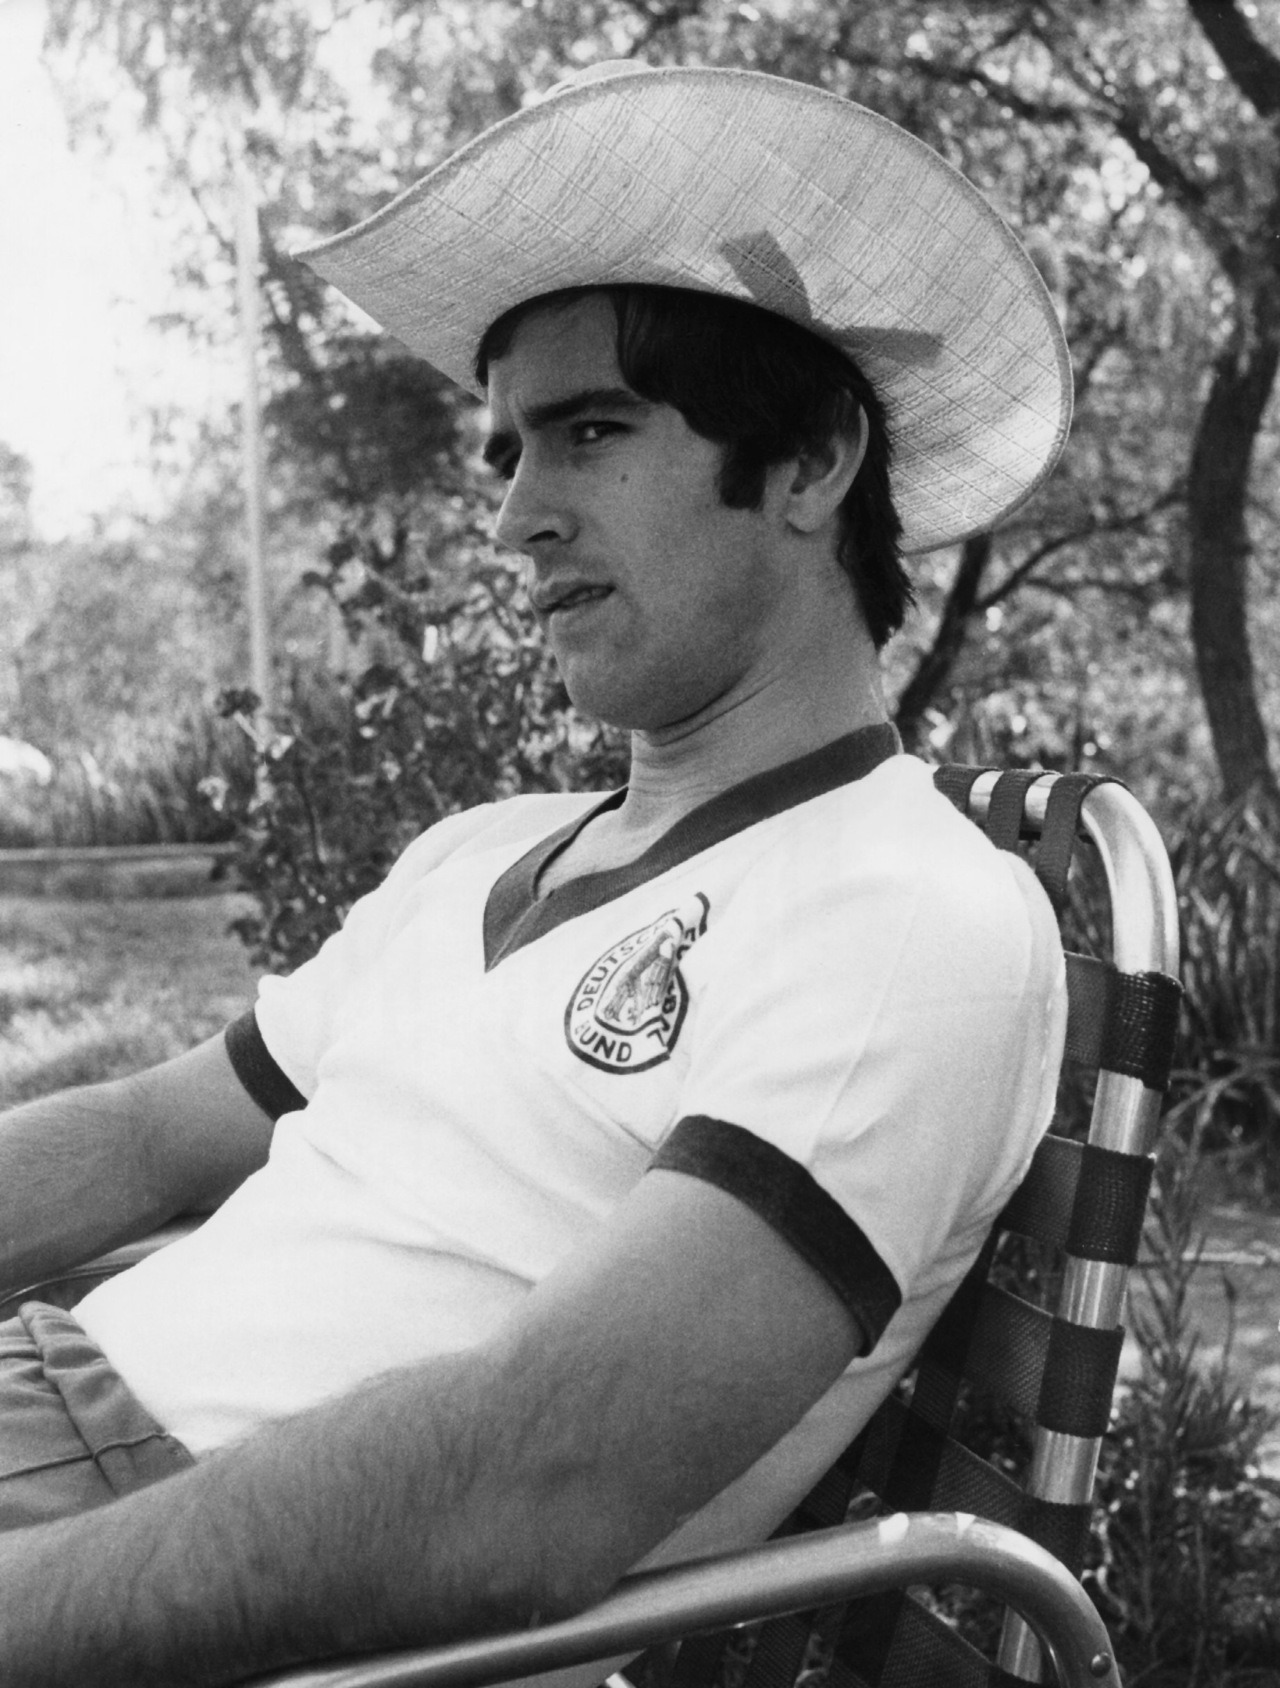 Gerd Müller, World Cup 1970.